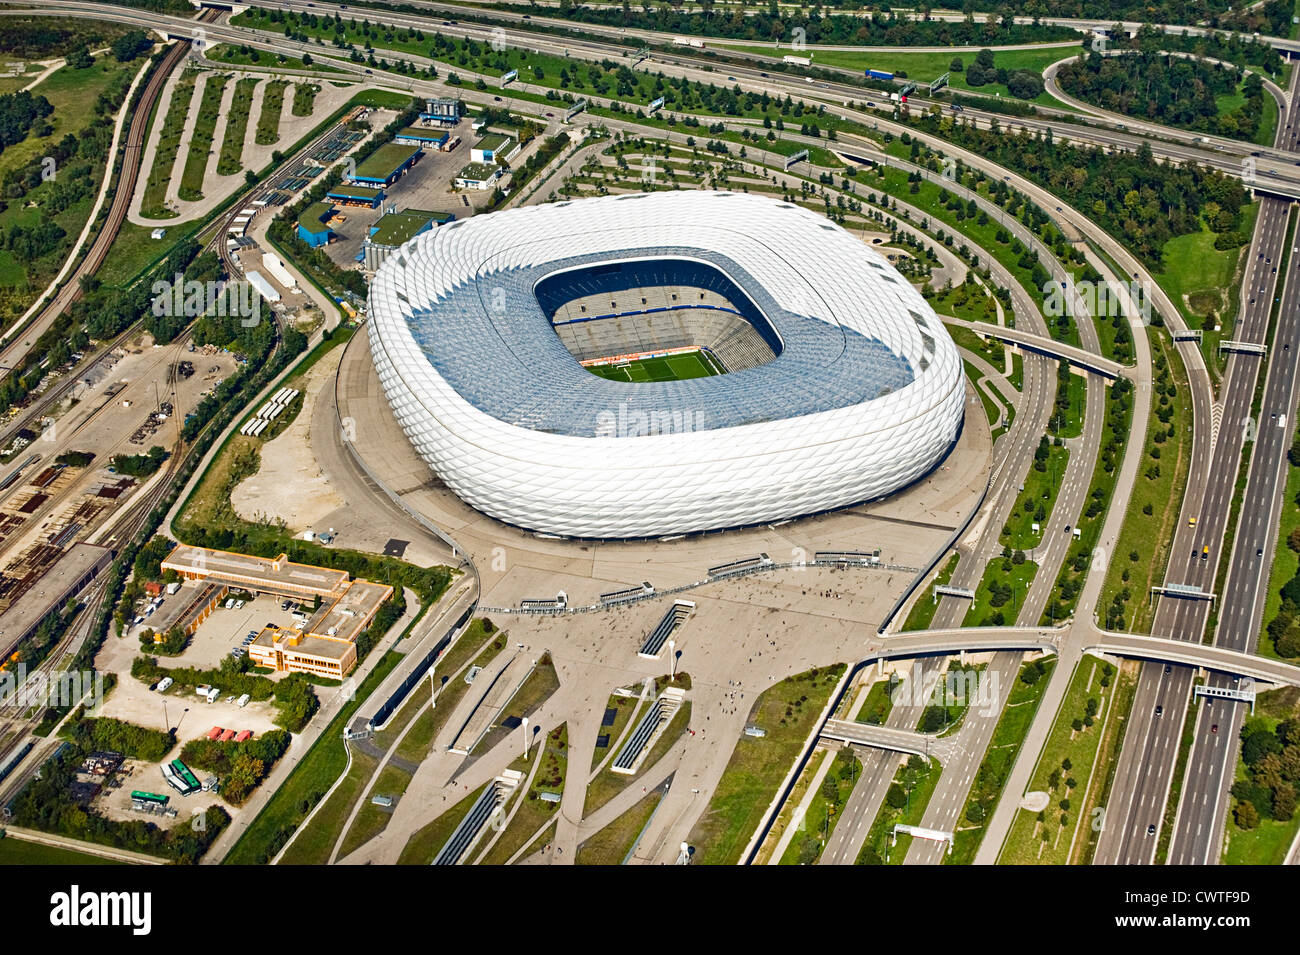 Soccer stadium, Munich, Bavaria, Germany, aerial view - Stock Image